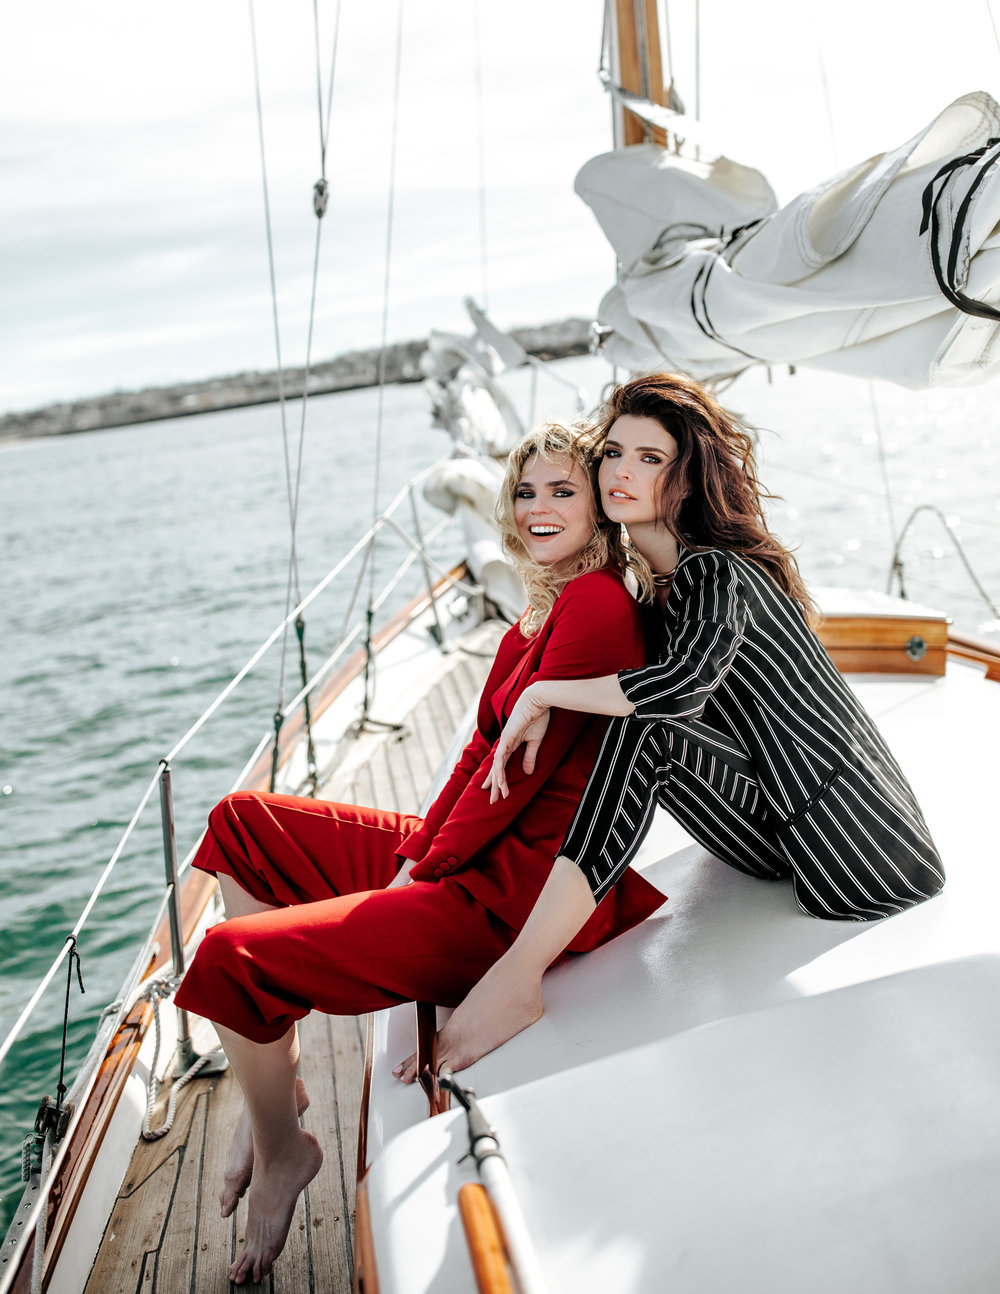 Sailing Editorials (33 of 36).jpg